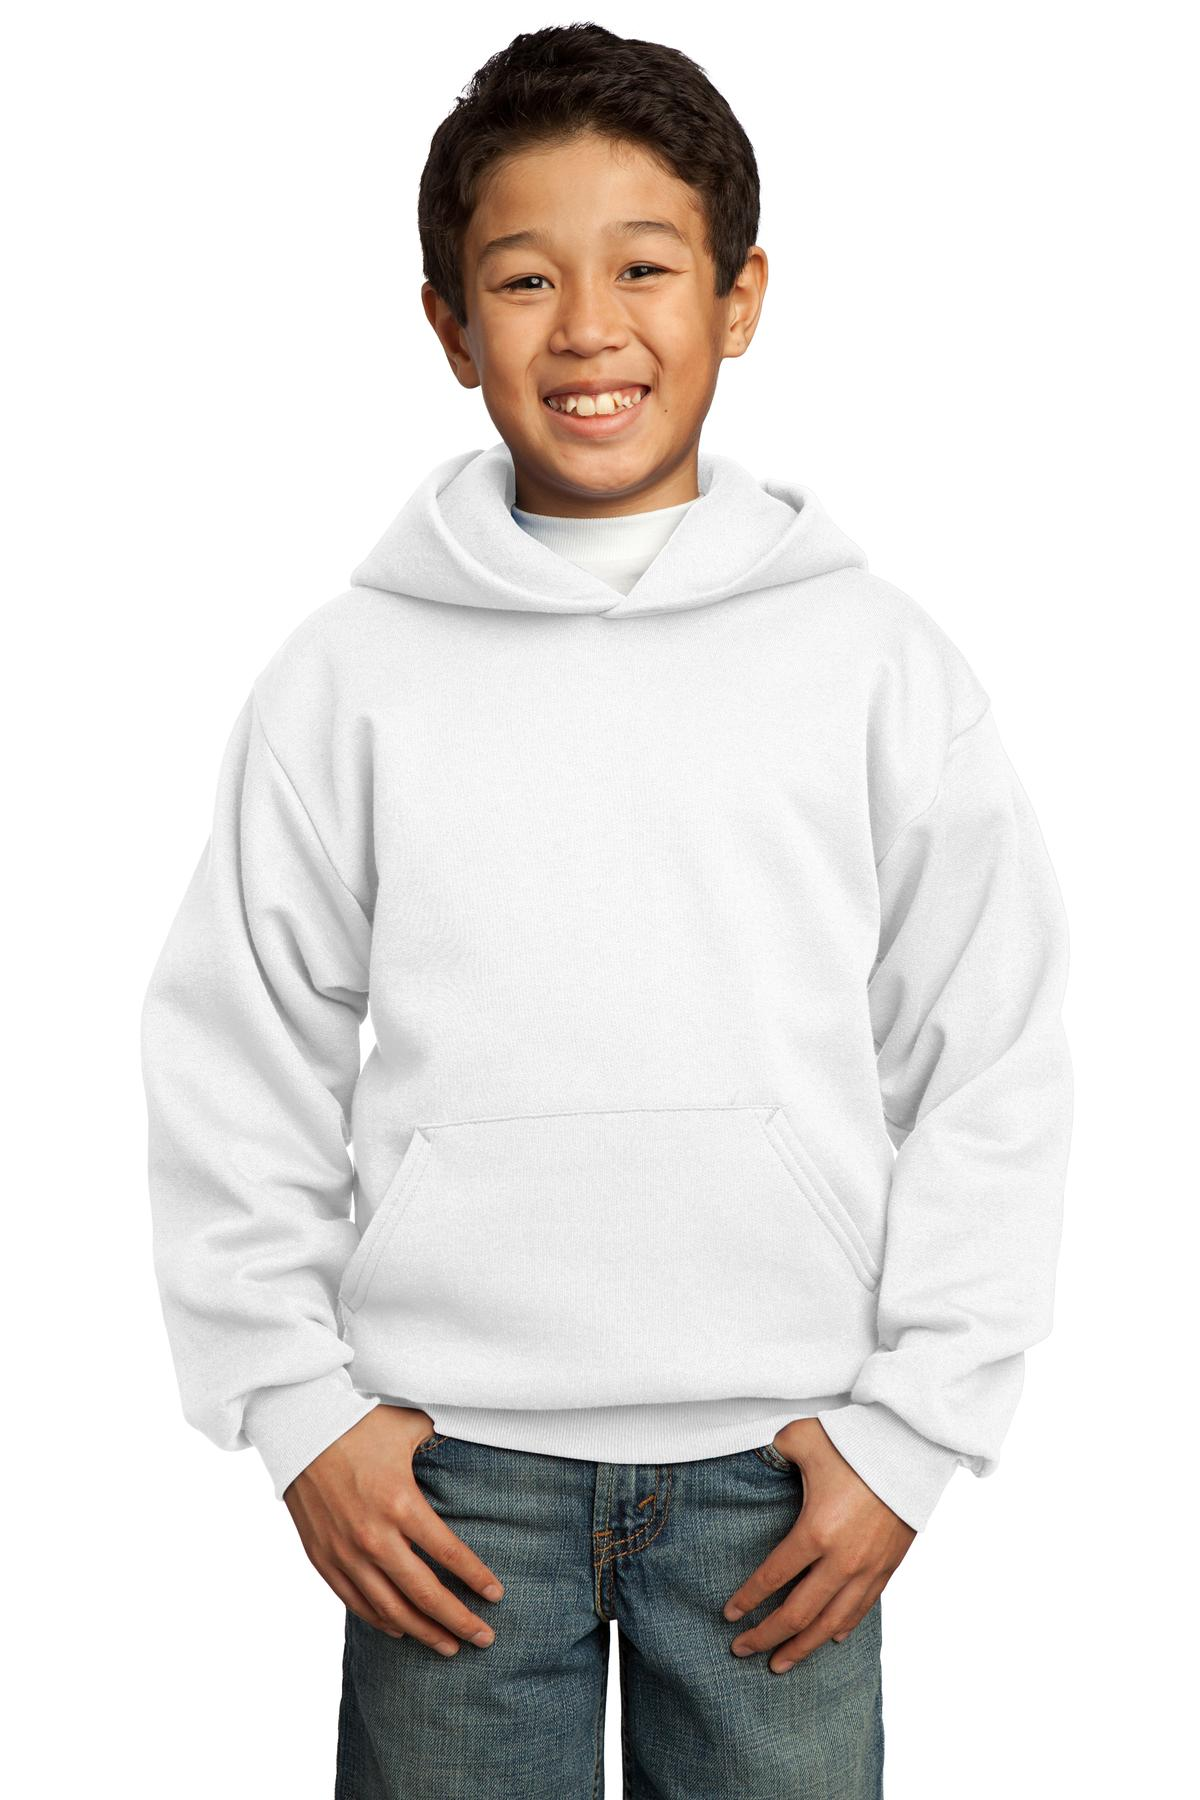 White Port & Company - Youth Core Fleece Pullover Hooded Sweatshirt.